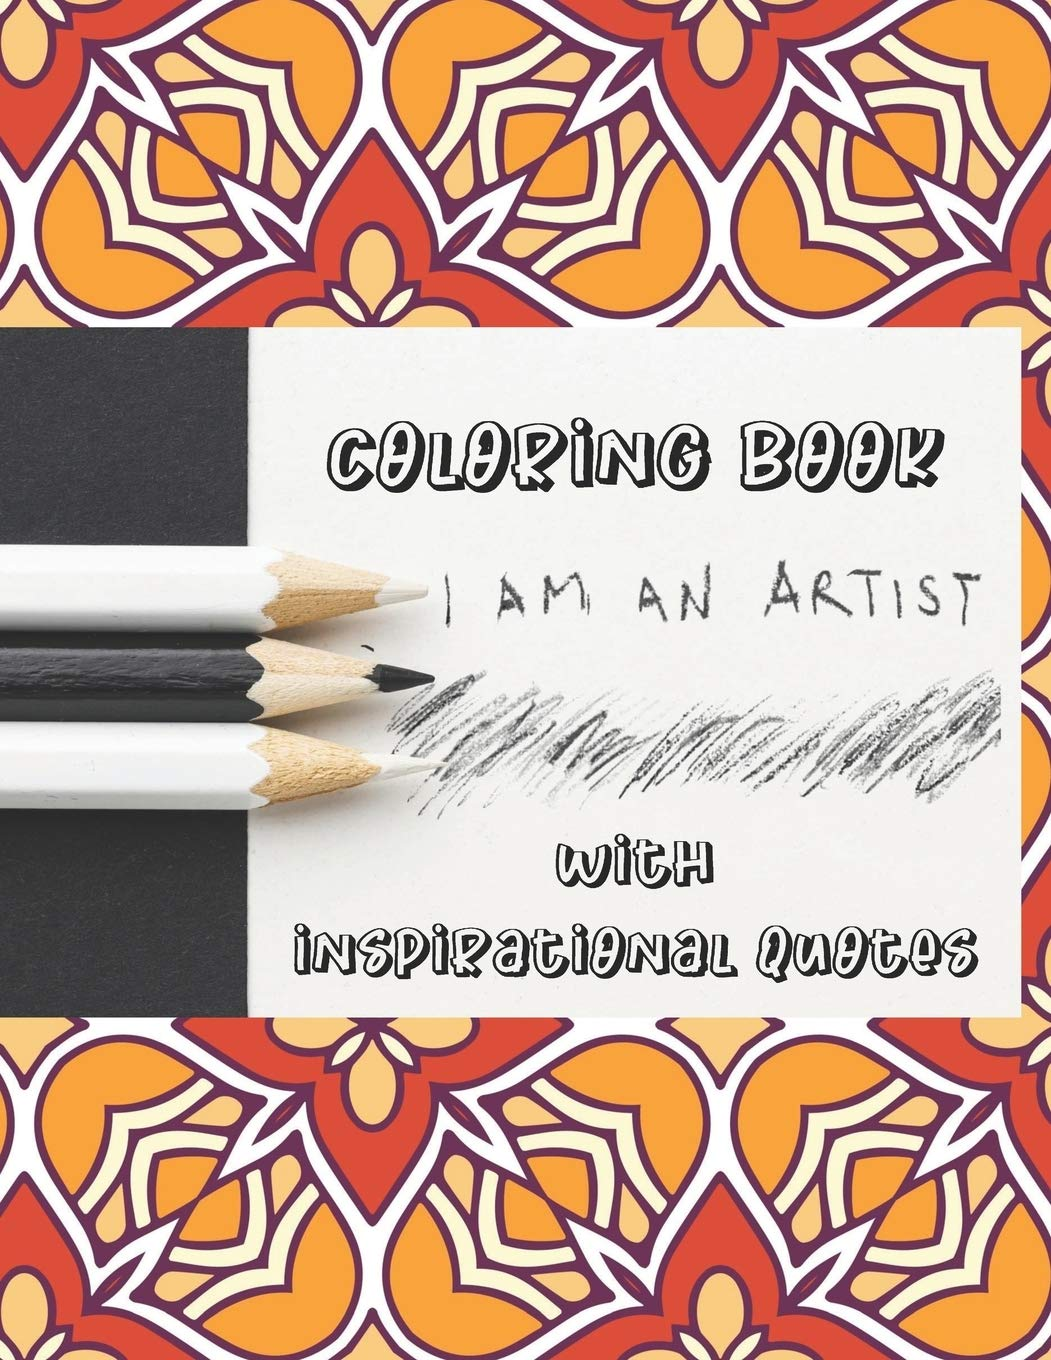 I Am An Artist Coloring Book With Inspirational Quotes 50 Anti Stress Adult Coloring Pages With Beautiful Patterns Flowers And Motivational Sayings Coloring Books Eli 9798652805821 Amazon Com Books